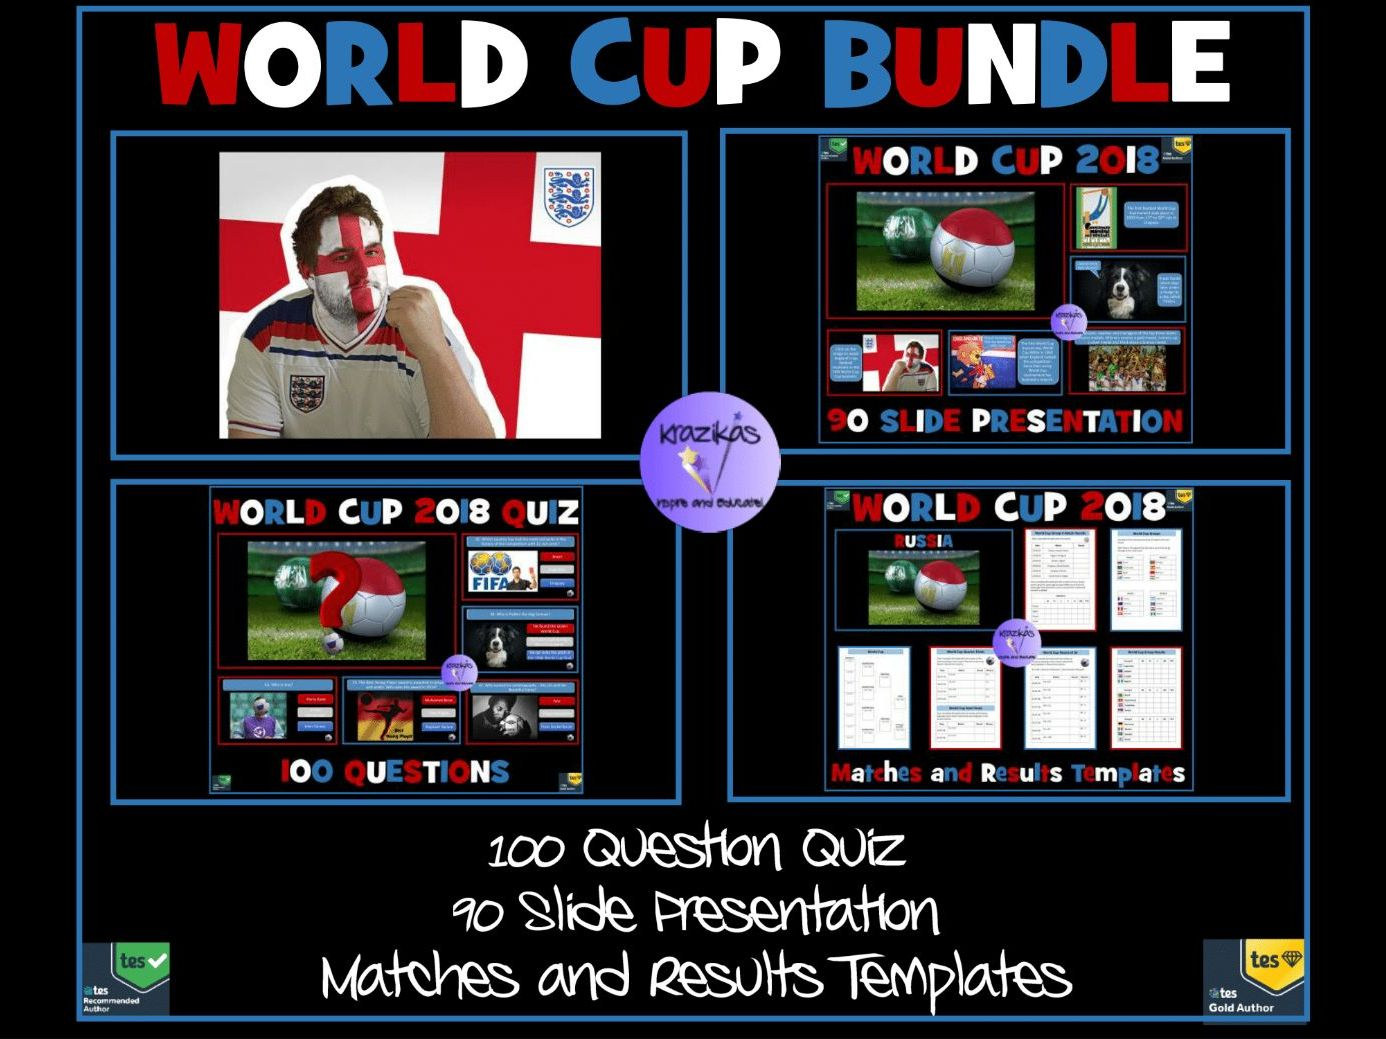 Football World Cup 2018 Bundle - Quiz, Presentation, Match Results Templates